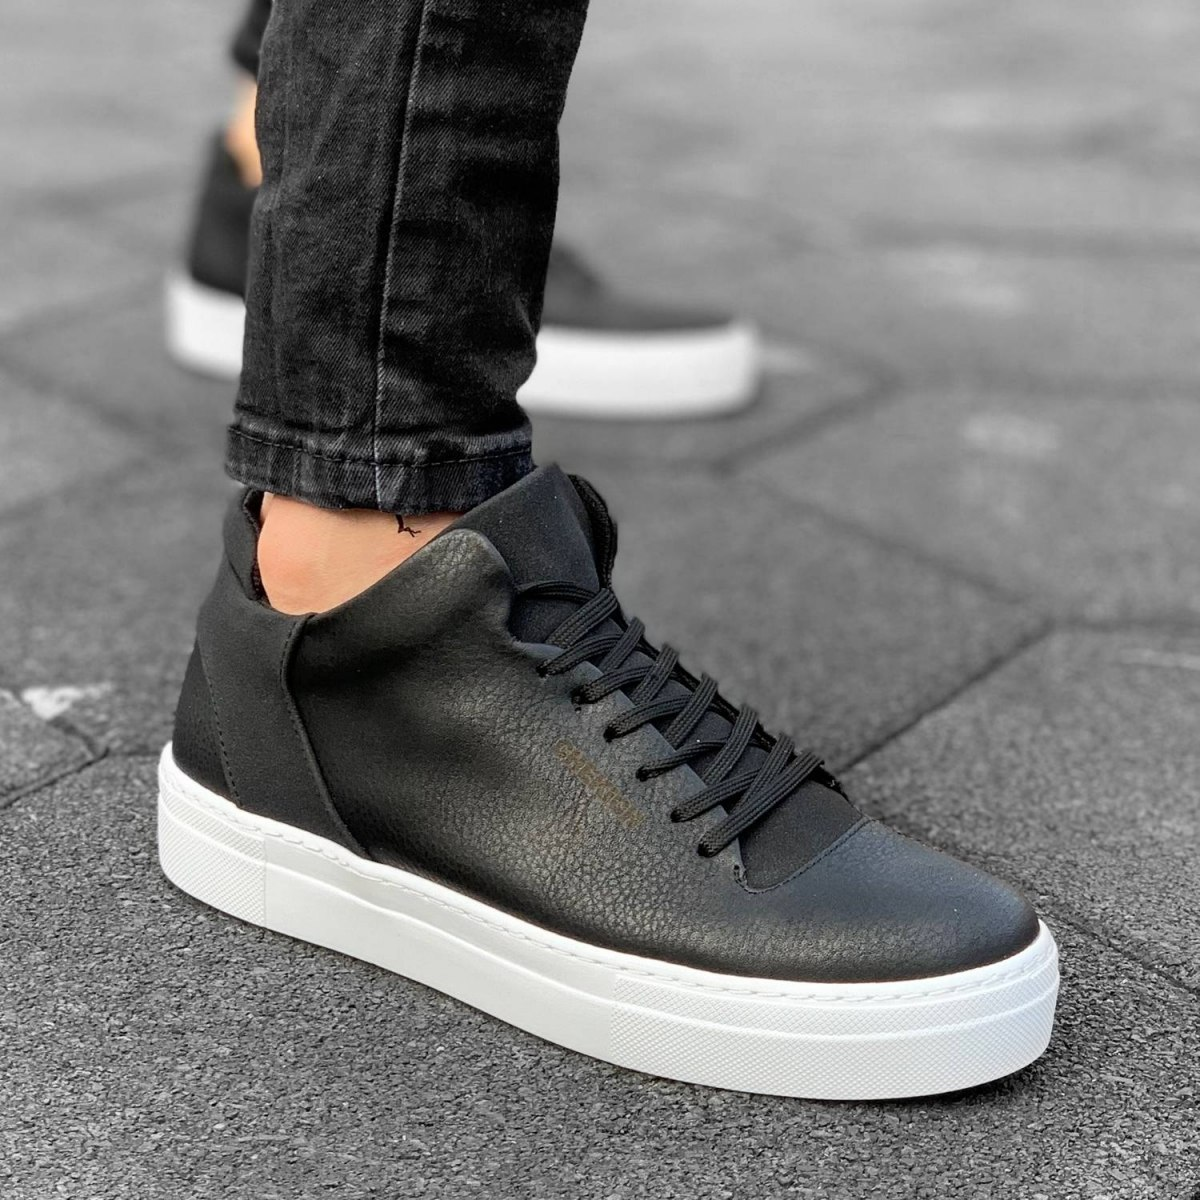 Street-Style Sneakers in Black&White